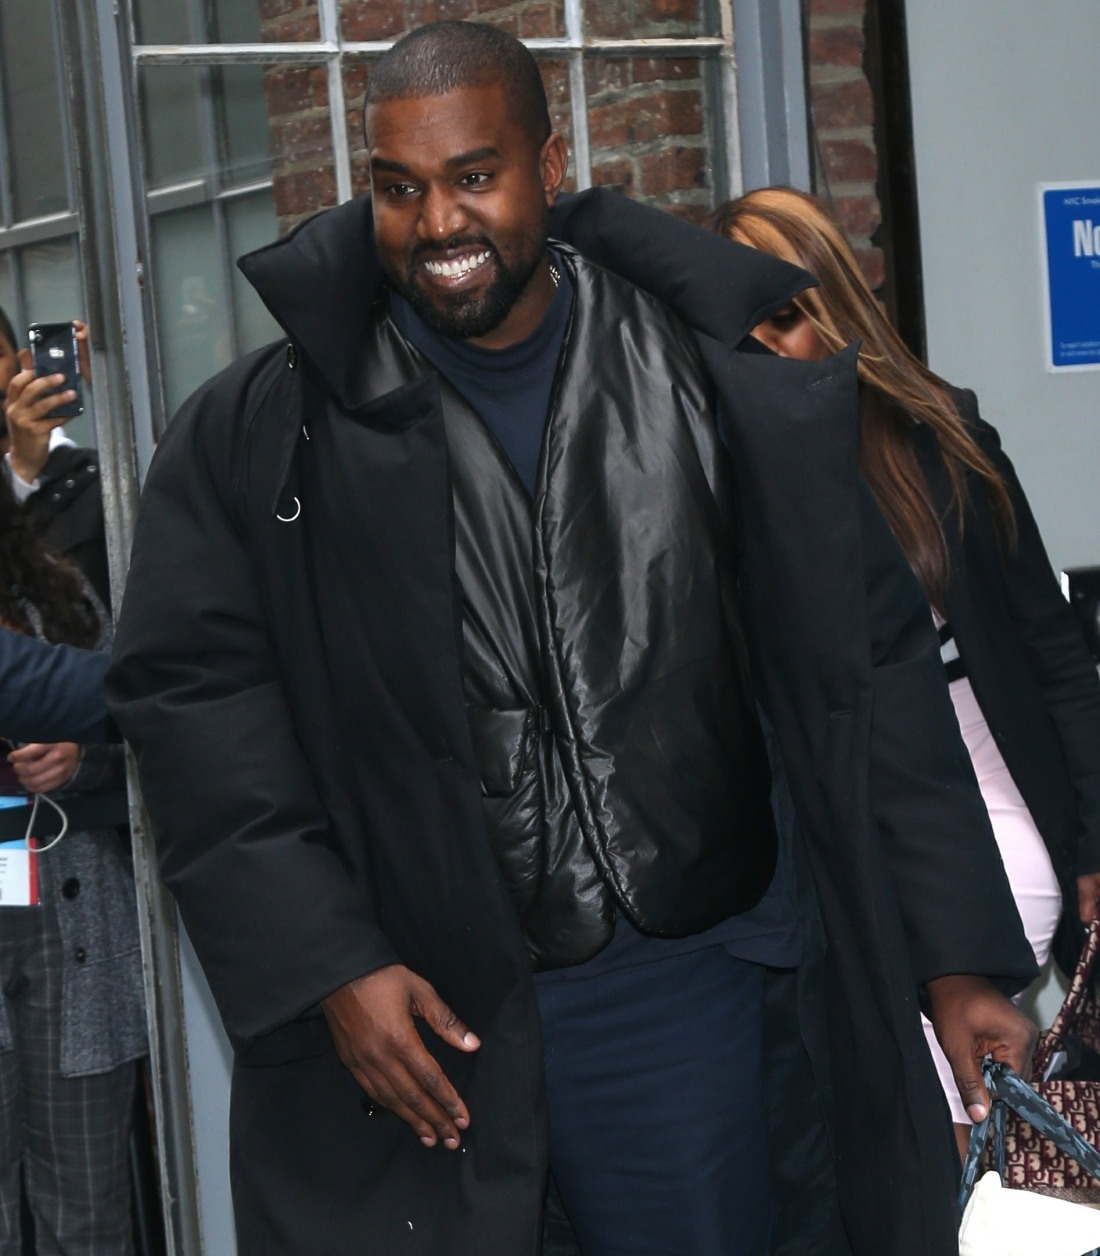 Kanye West might change his name to Christian Genius Billionaire Kanye West